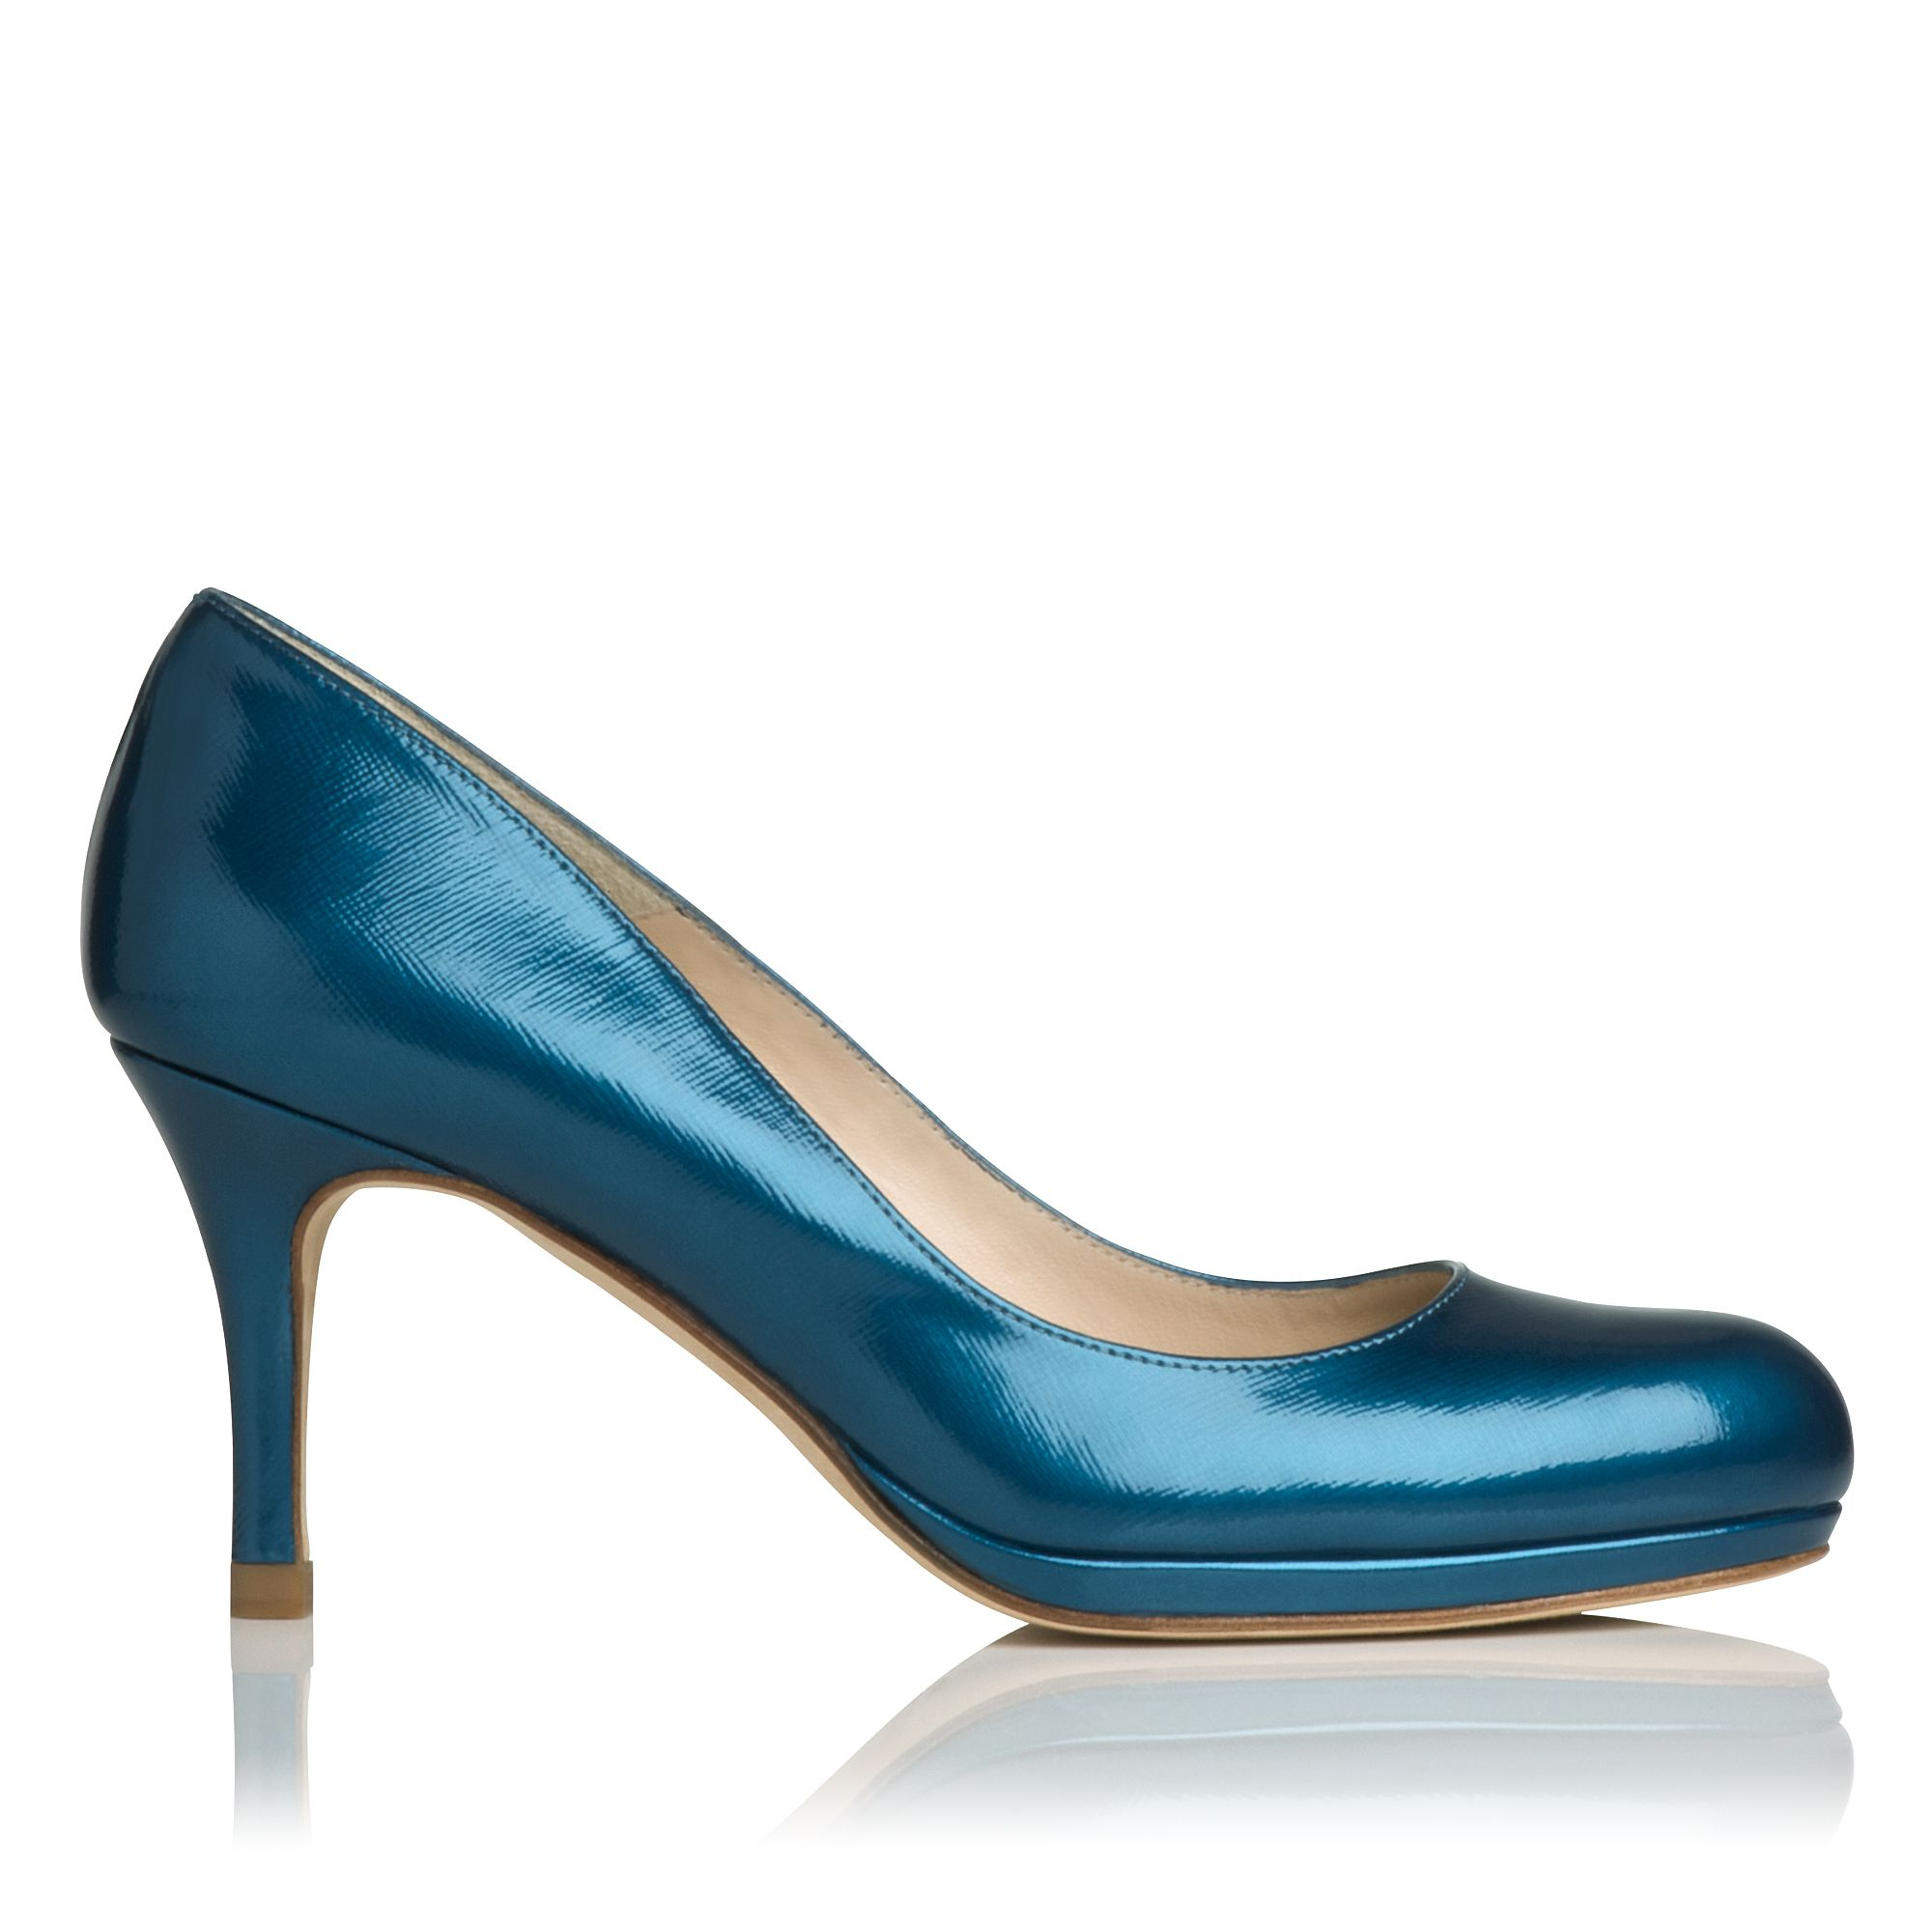 Sybila round toe court shoes